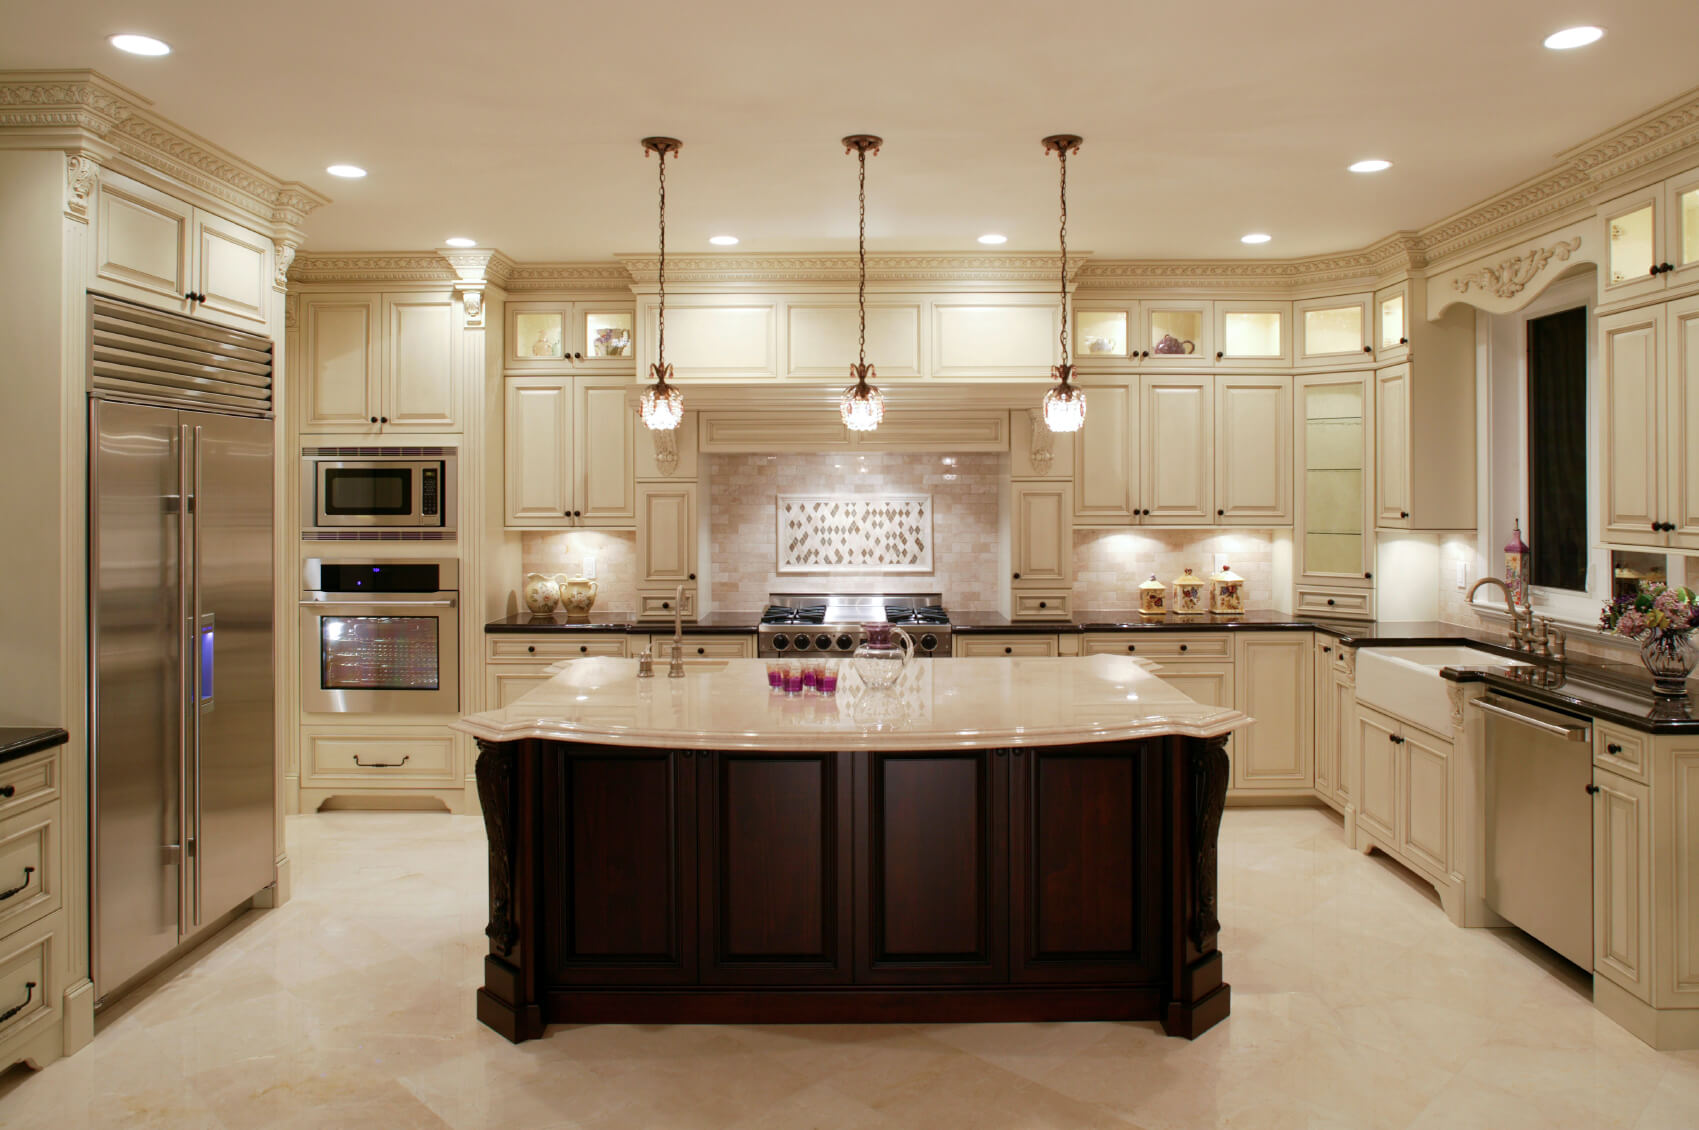 This U-shaped kitchen centers around a large dark wood island with classic  marble countertop